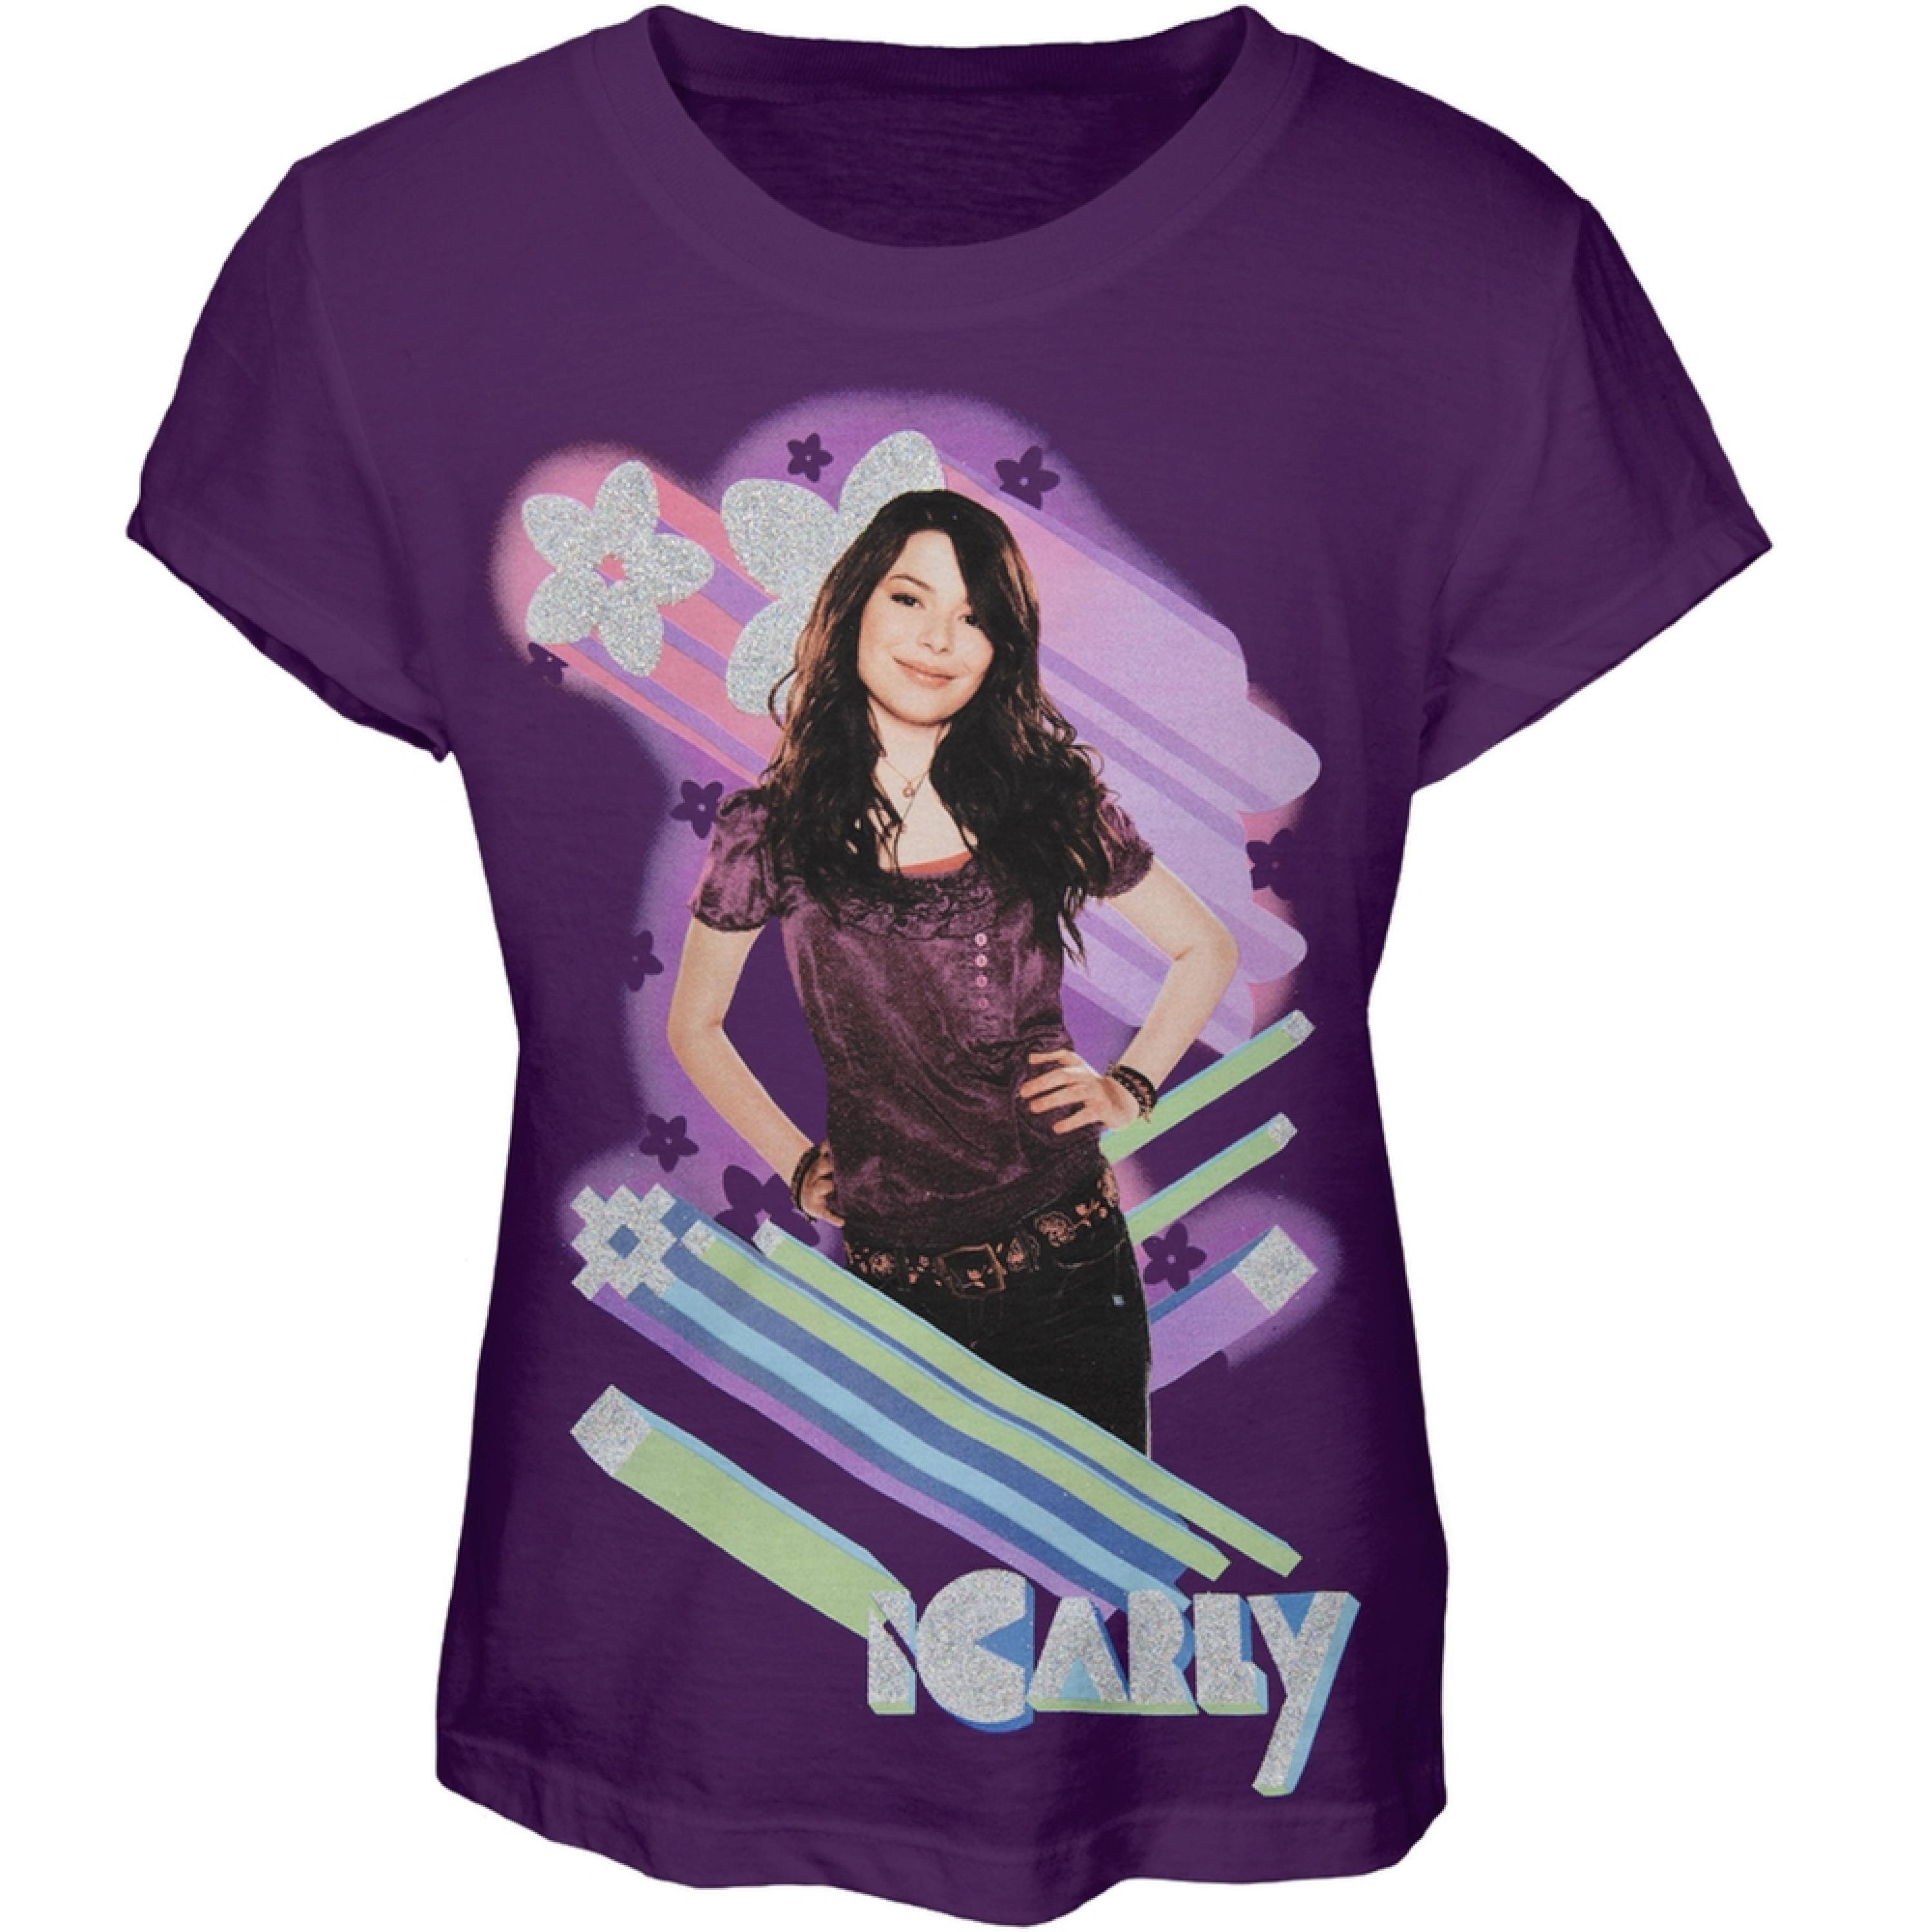 iCarly - Glitter Zoom Girls Youth T-Shirt